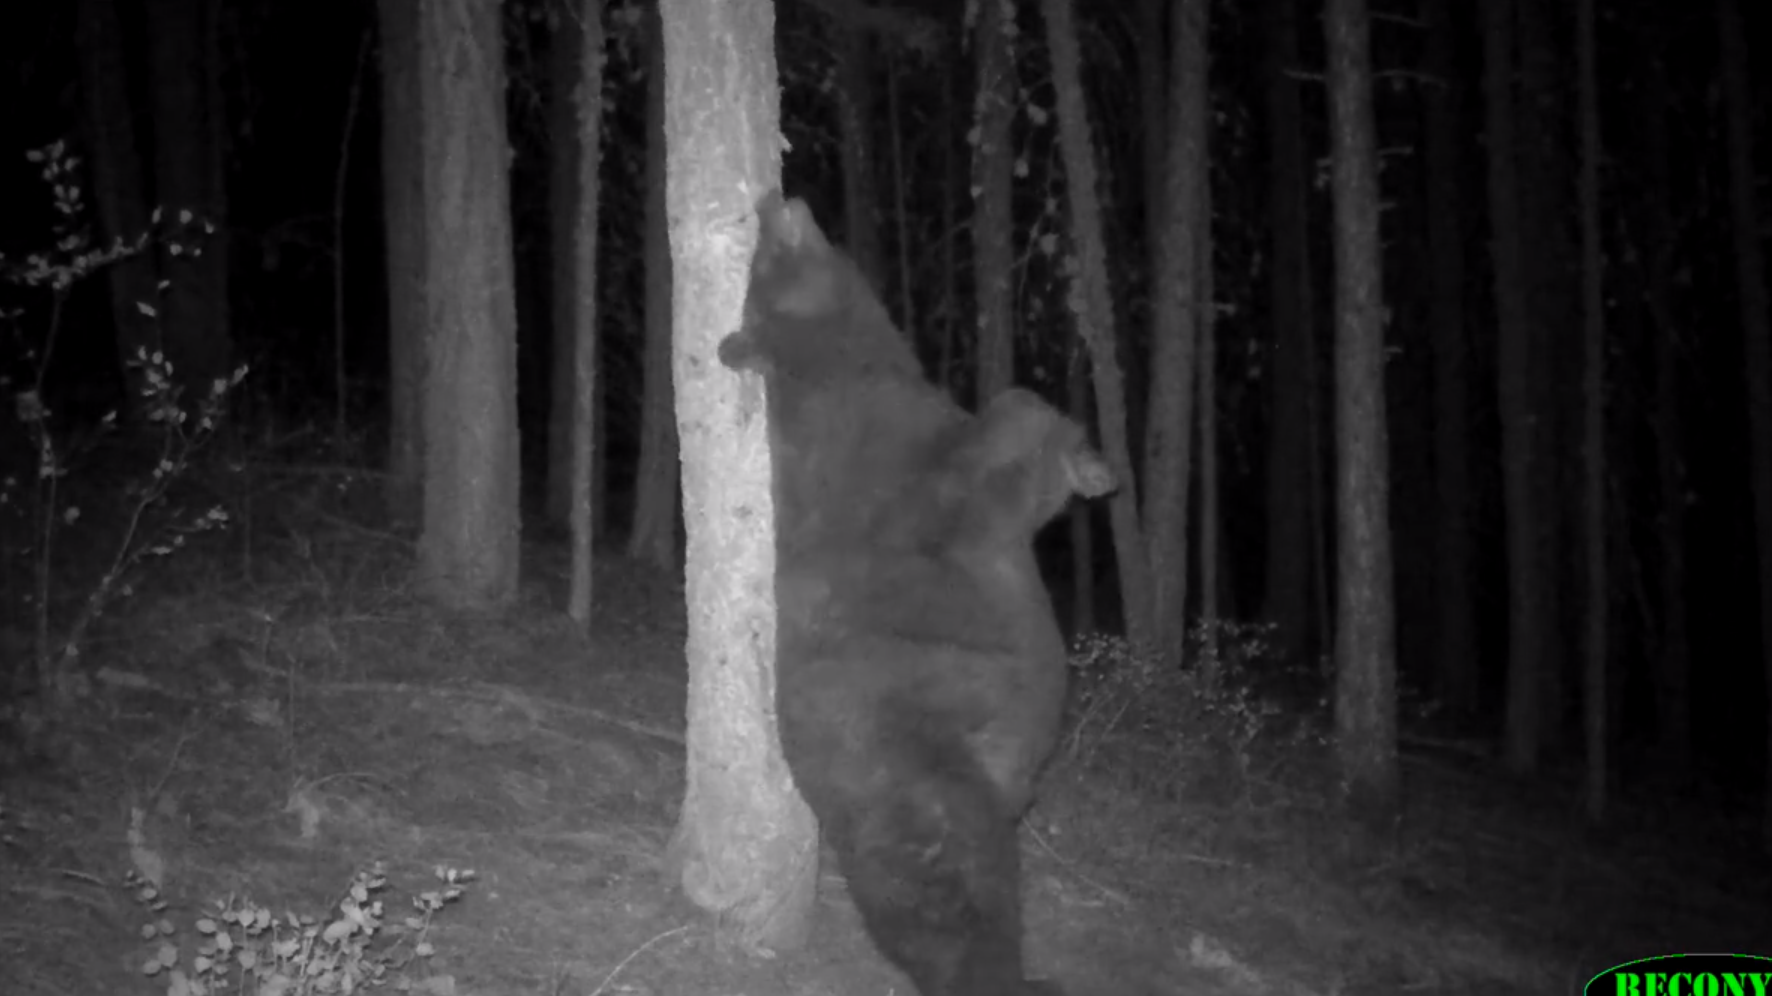 Itchy bear caught on camera in Washington